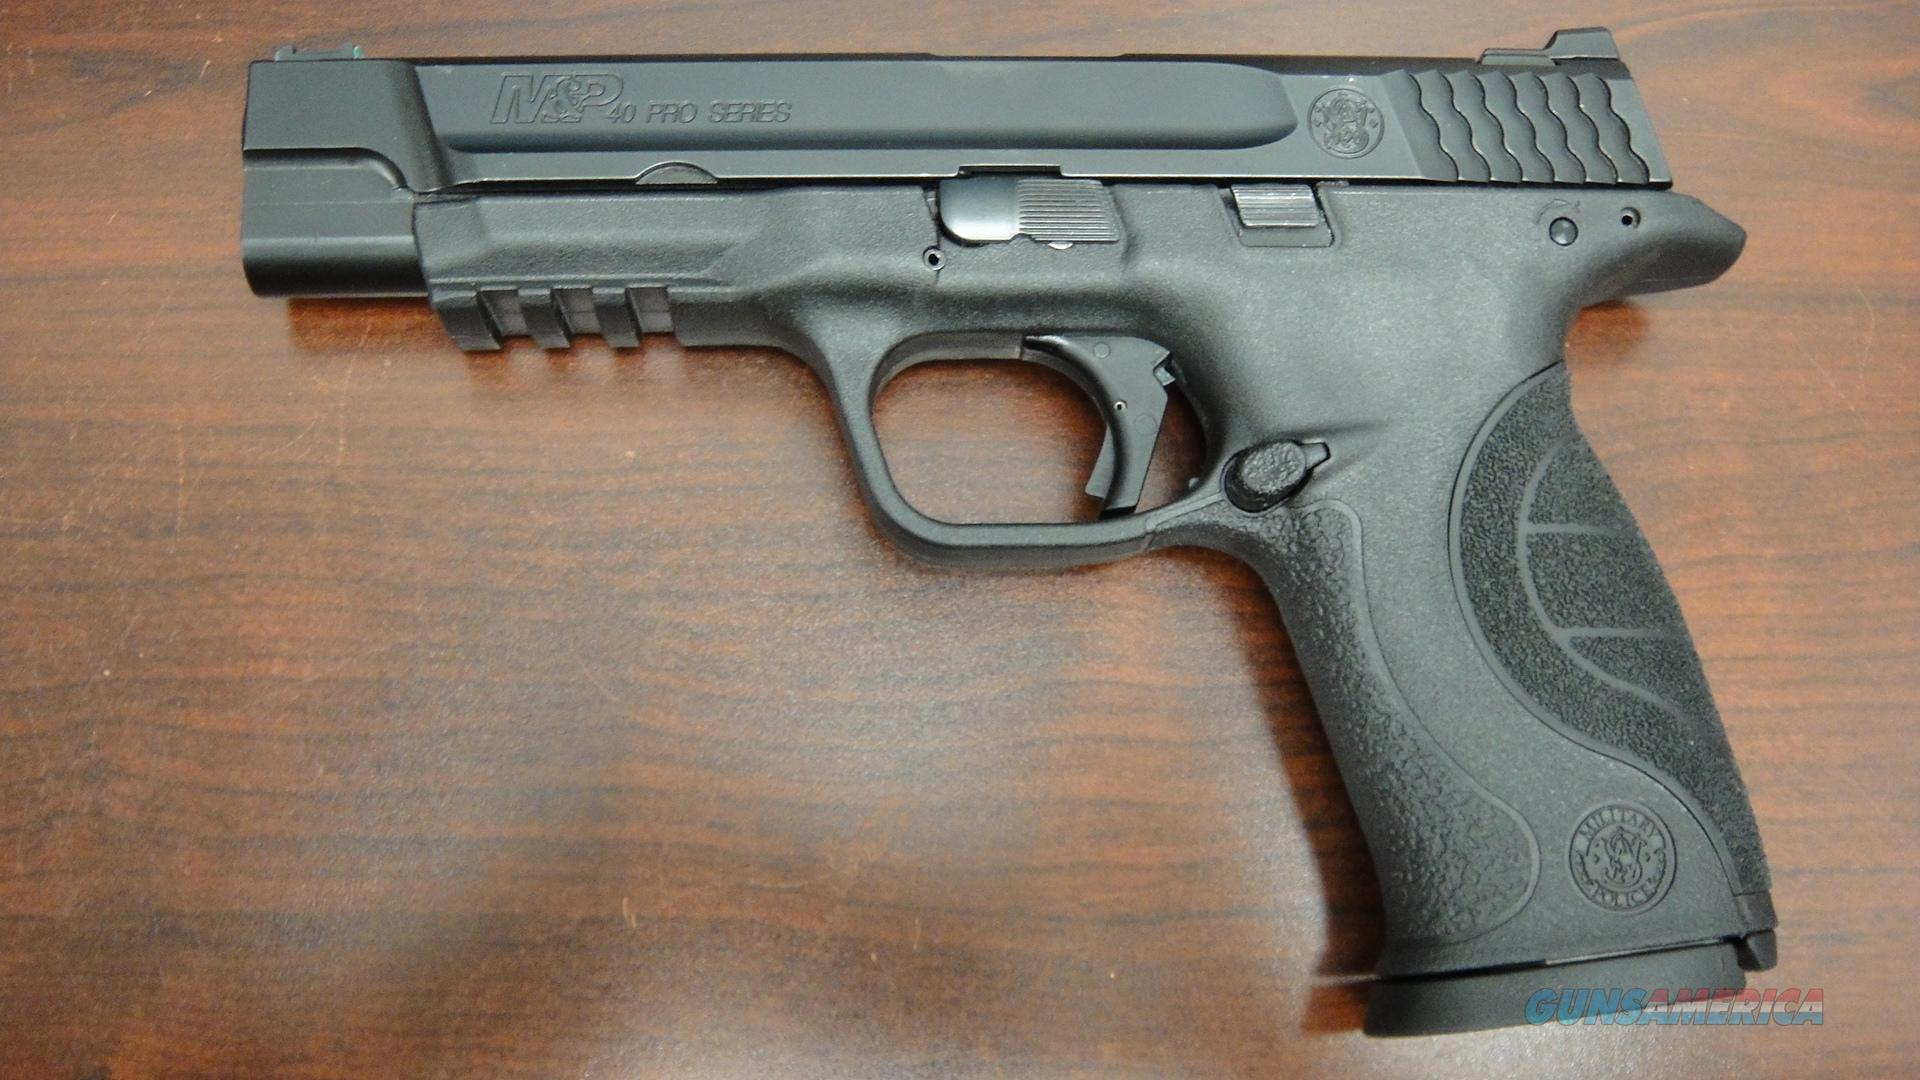 Smith and Wesson M&P40 Pro Series with Apex Trigger  Guns > Pistols > Smith & Wesson Pistols - Autos > Polymer Frame